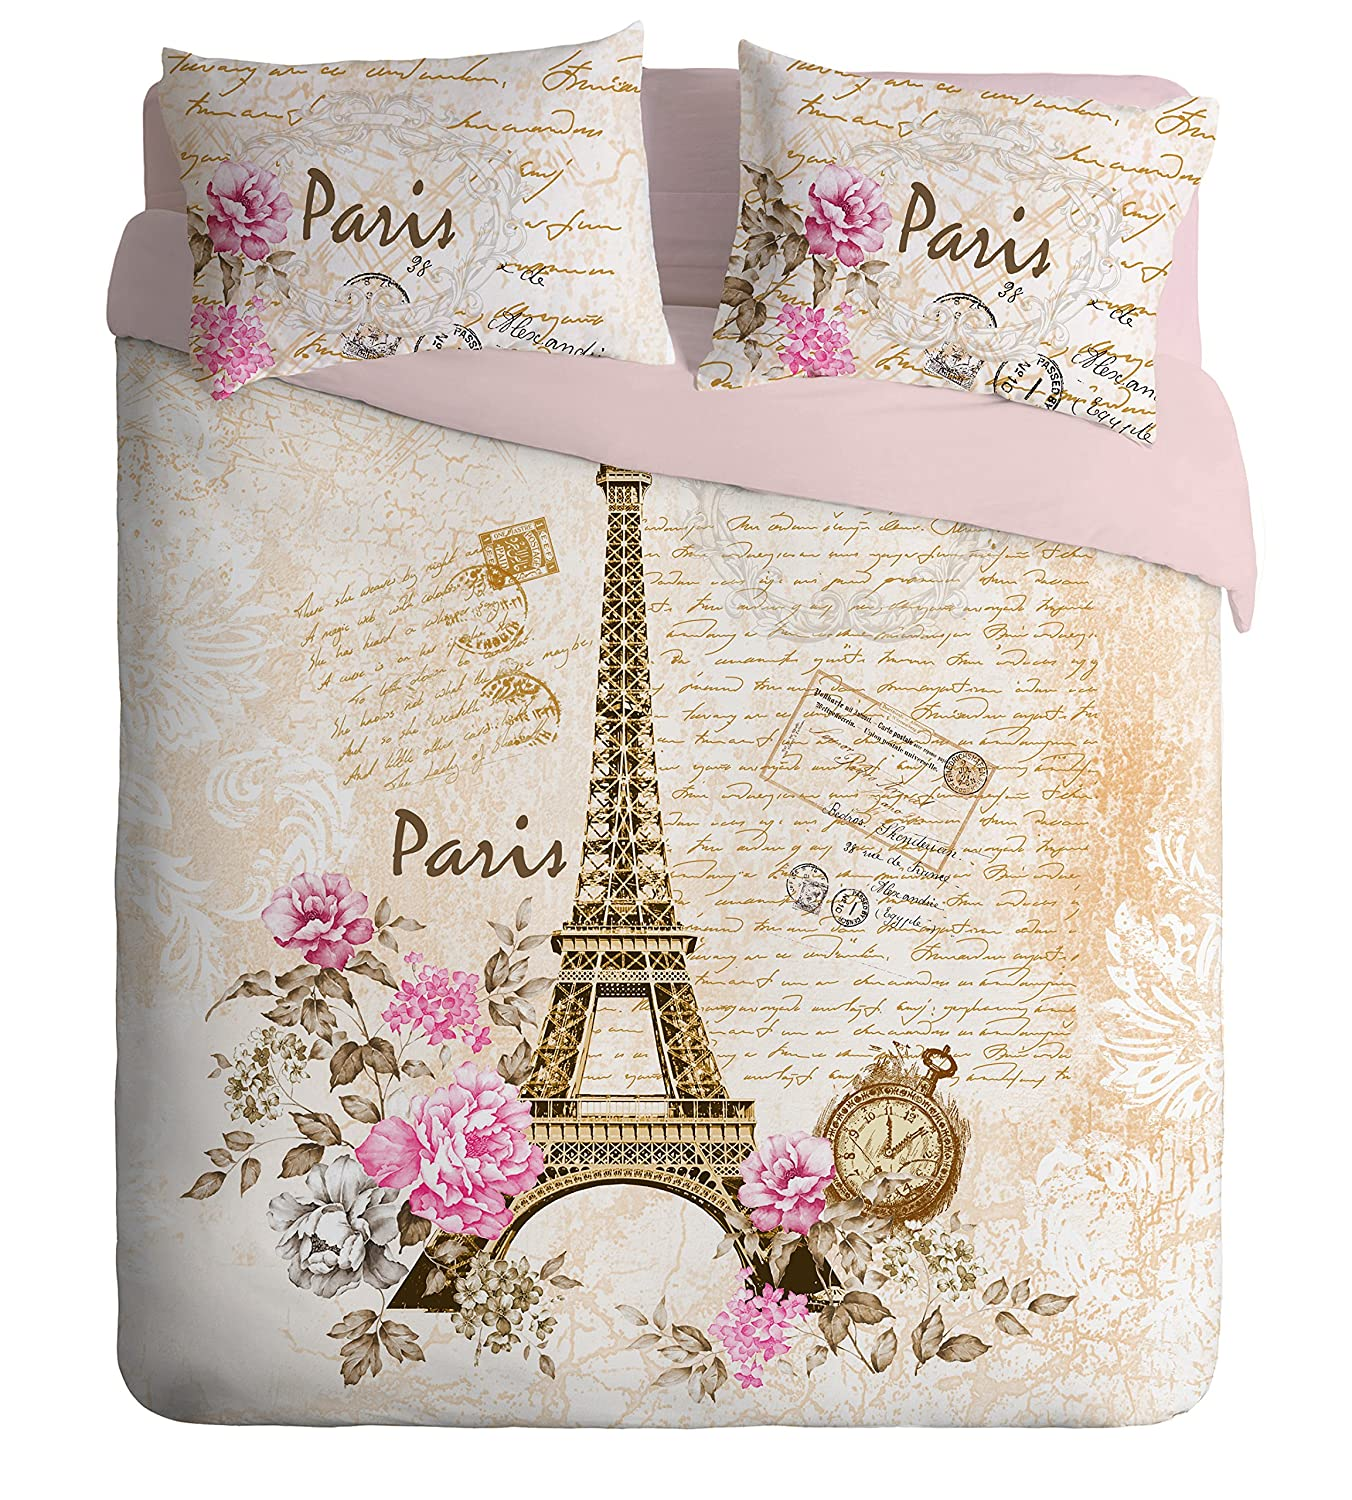 100% Turkish Cotton 4 Pcs!! Ranforce Paris Eiffel Tower Theme Themed Full Double Queen Size Quilt Duvet Cover Set Bedding Made in Turkey